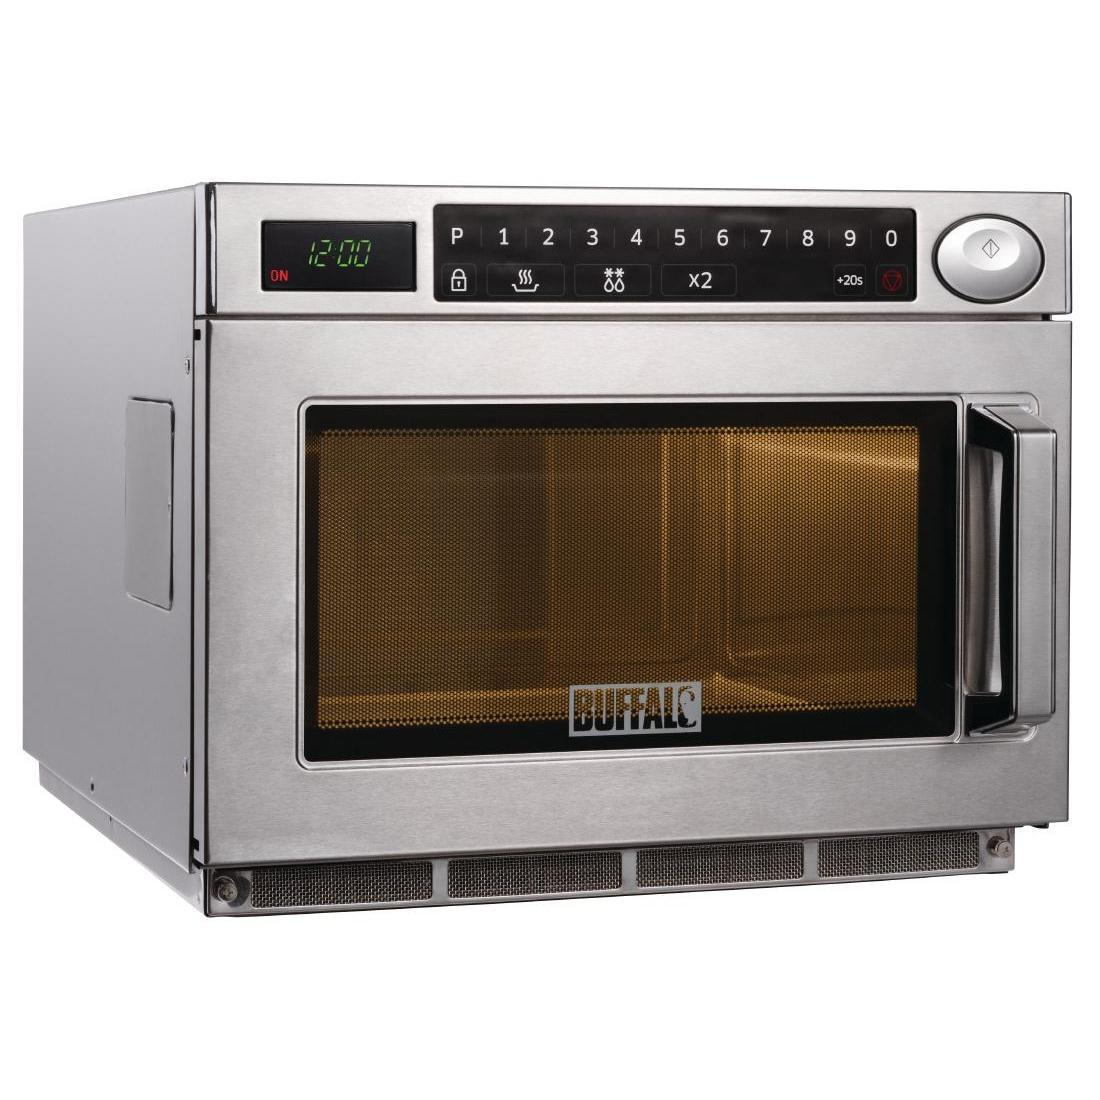 Buffalo Programmable Commercial Microwave Oven 1850W - GK640